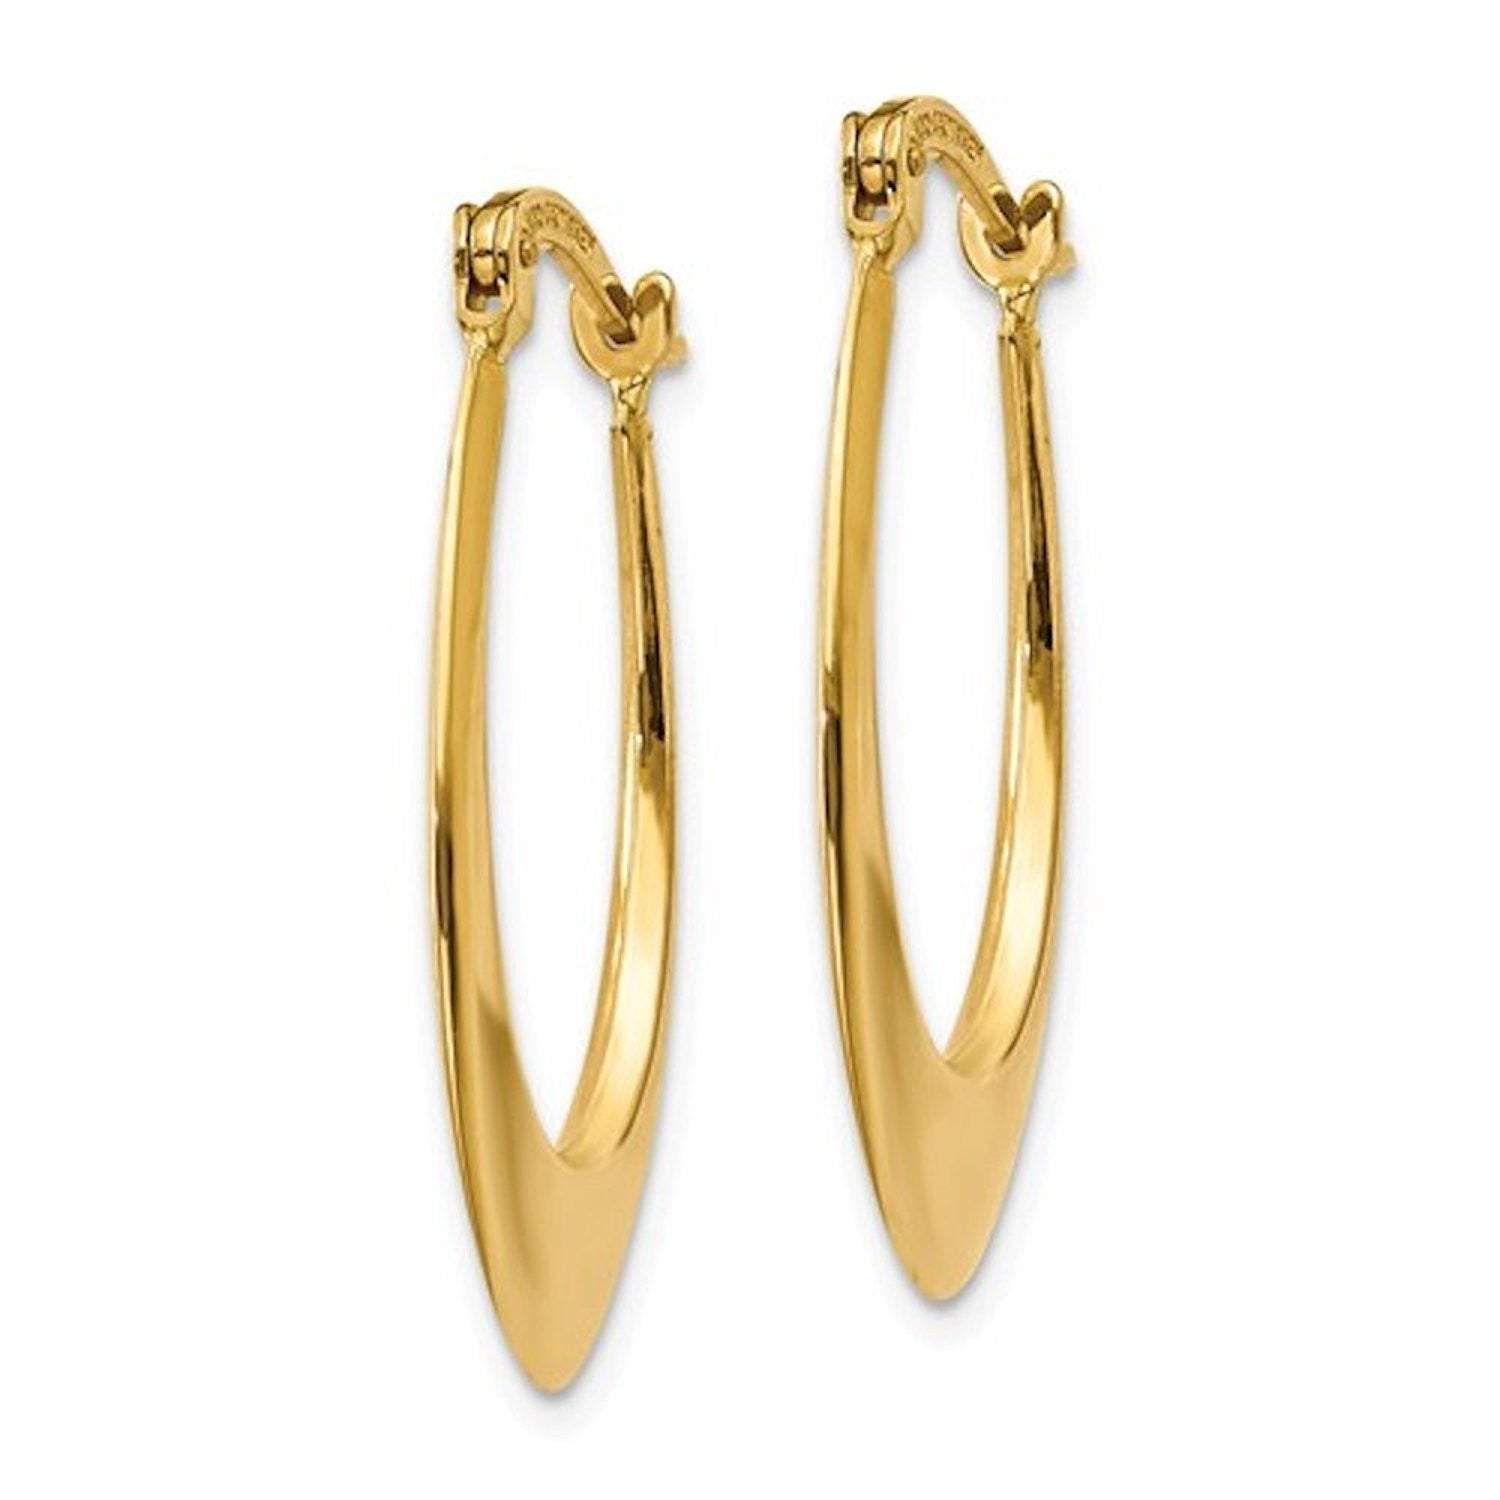 14k Yellow Gold Classic Oval Tube Hoop Earrings